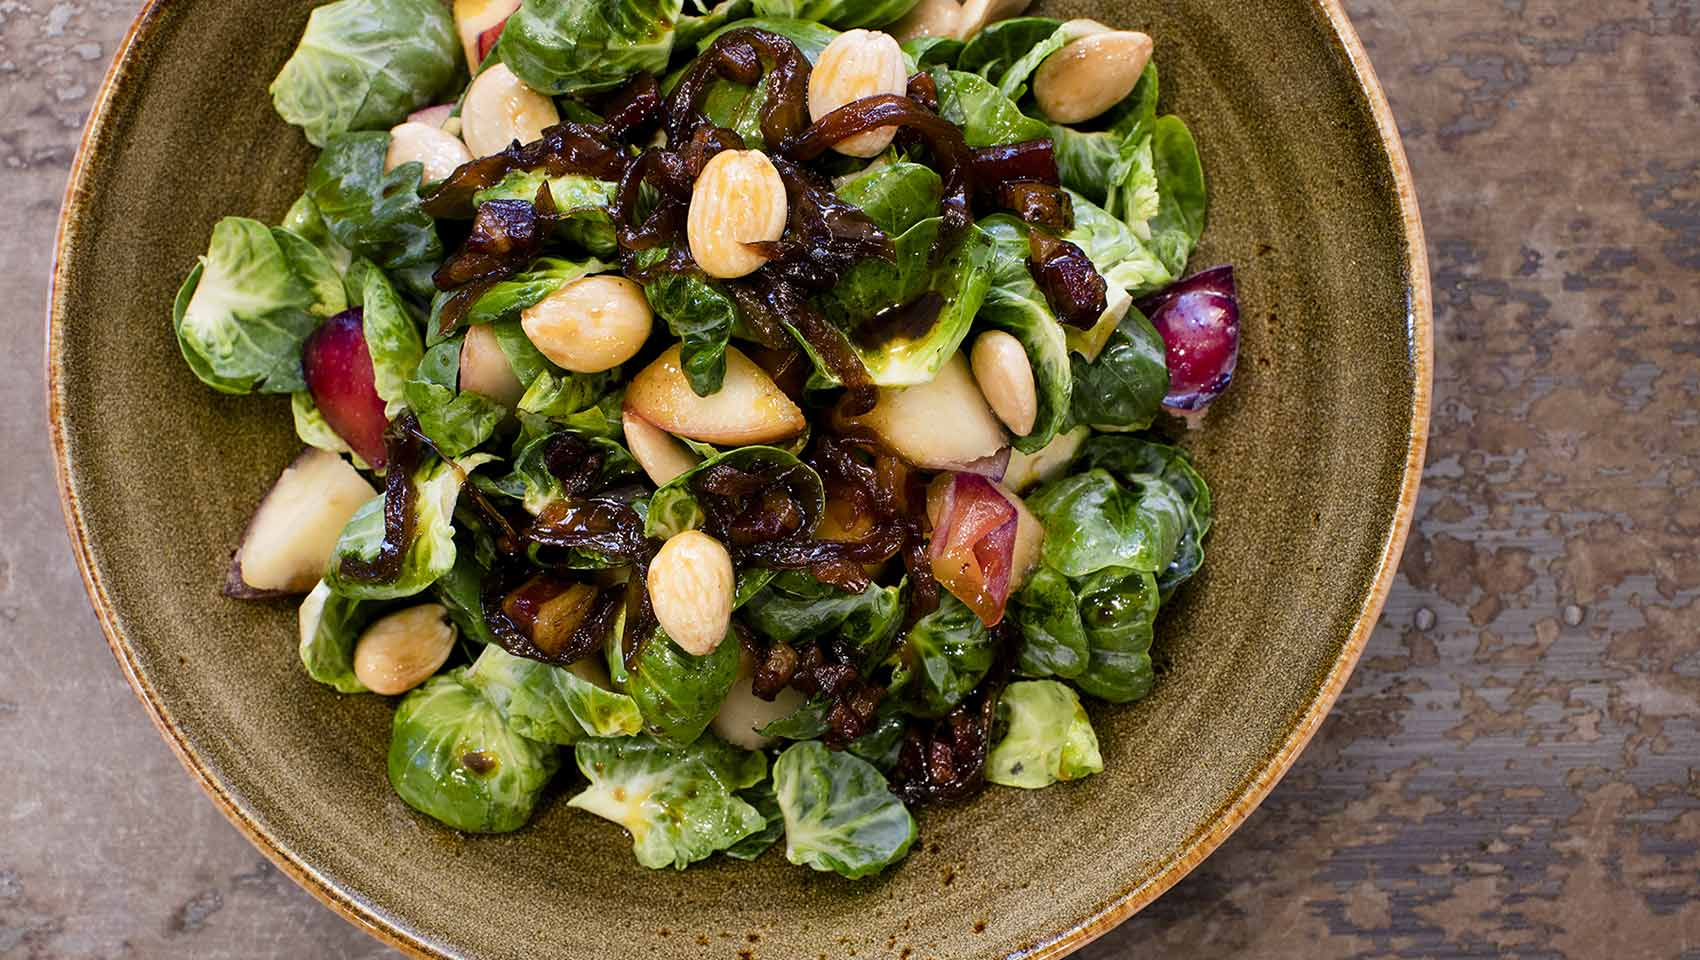 B&O's Brussel Sprout Salad